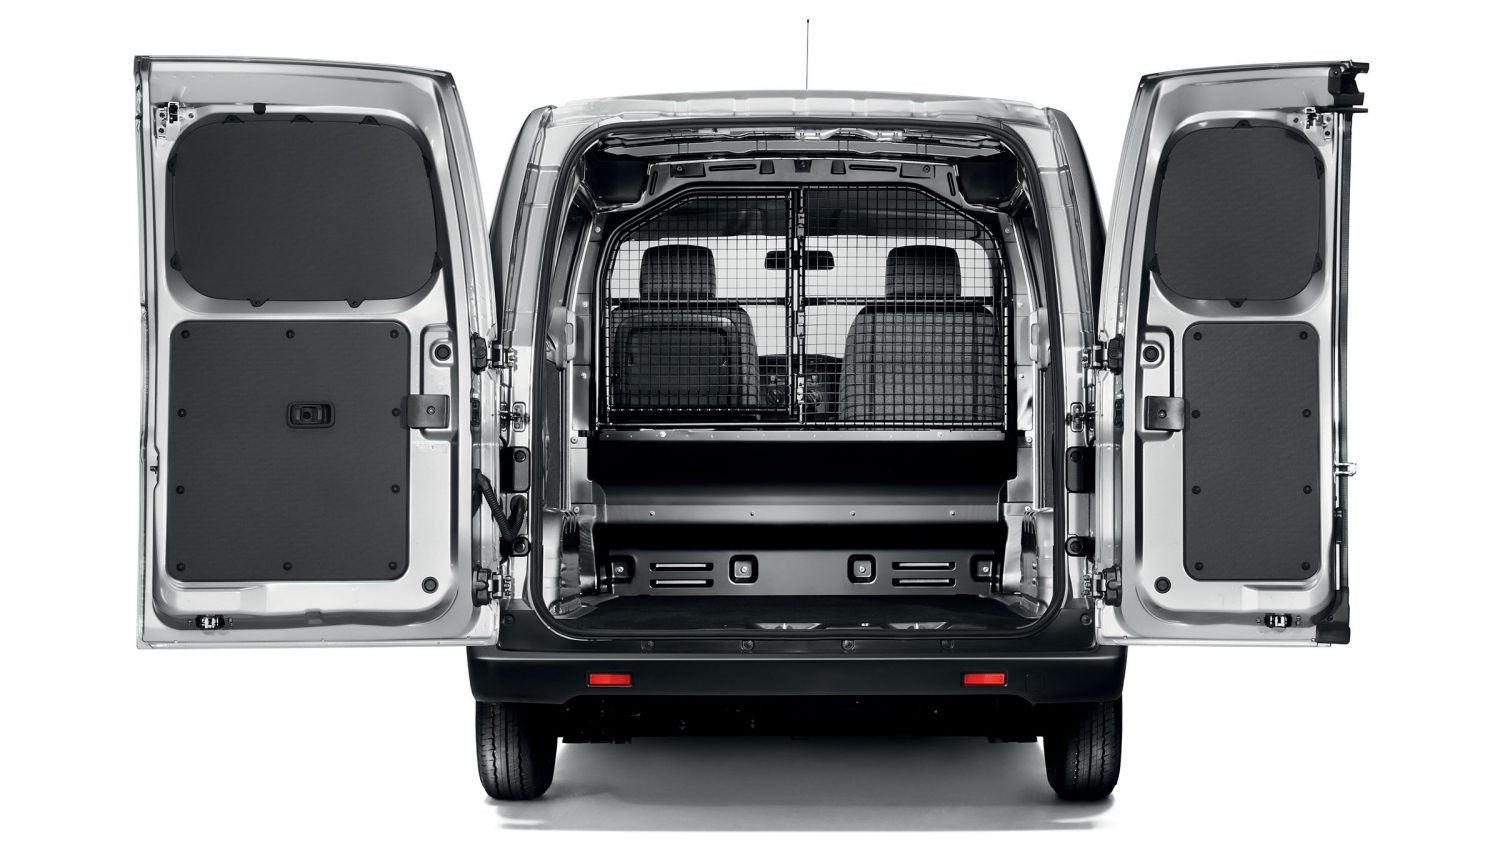 Van | Nissan NV200 | Commercial vehicle load space